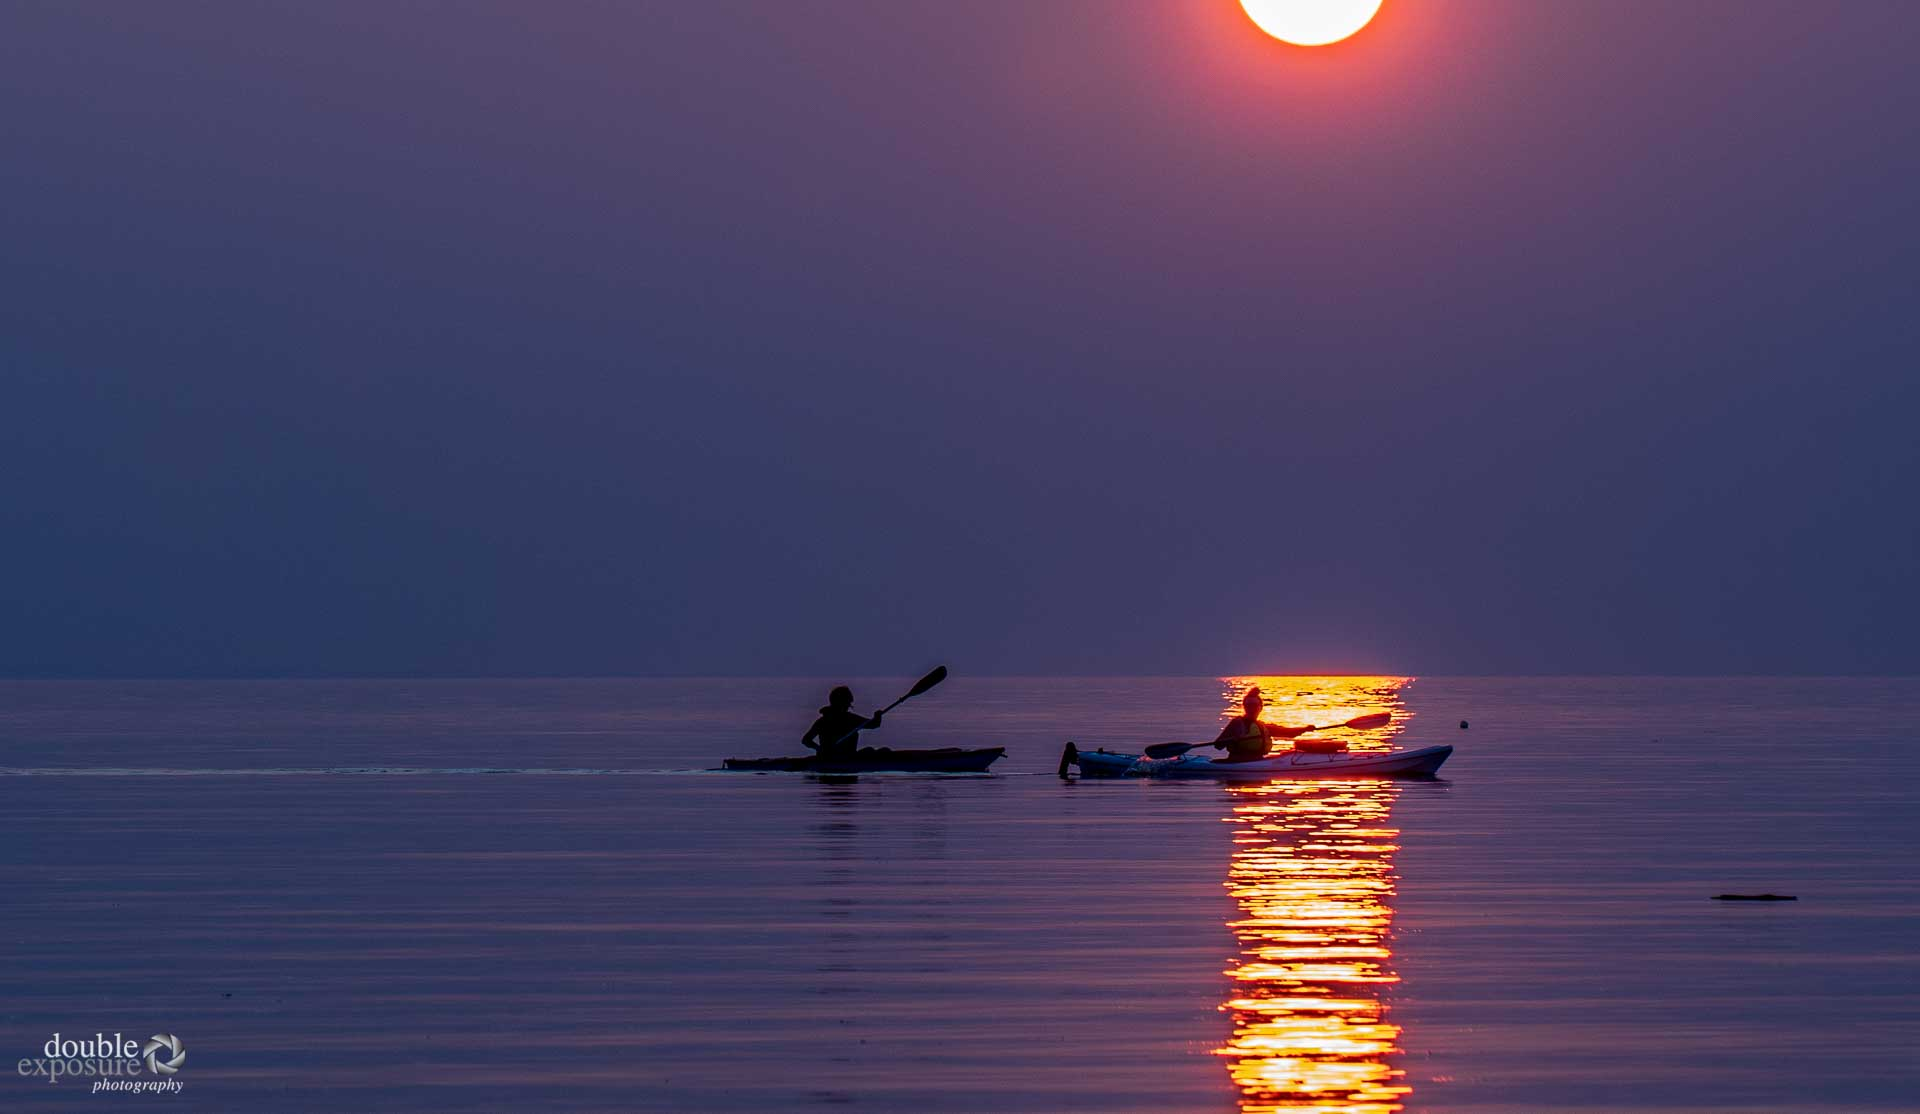 Kayakers in the light of the setting sun.